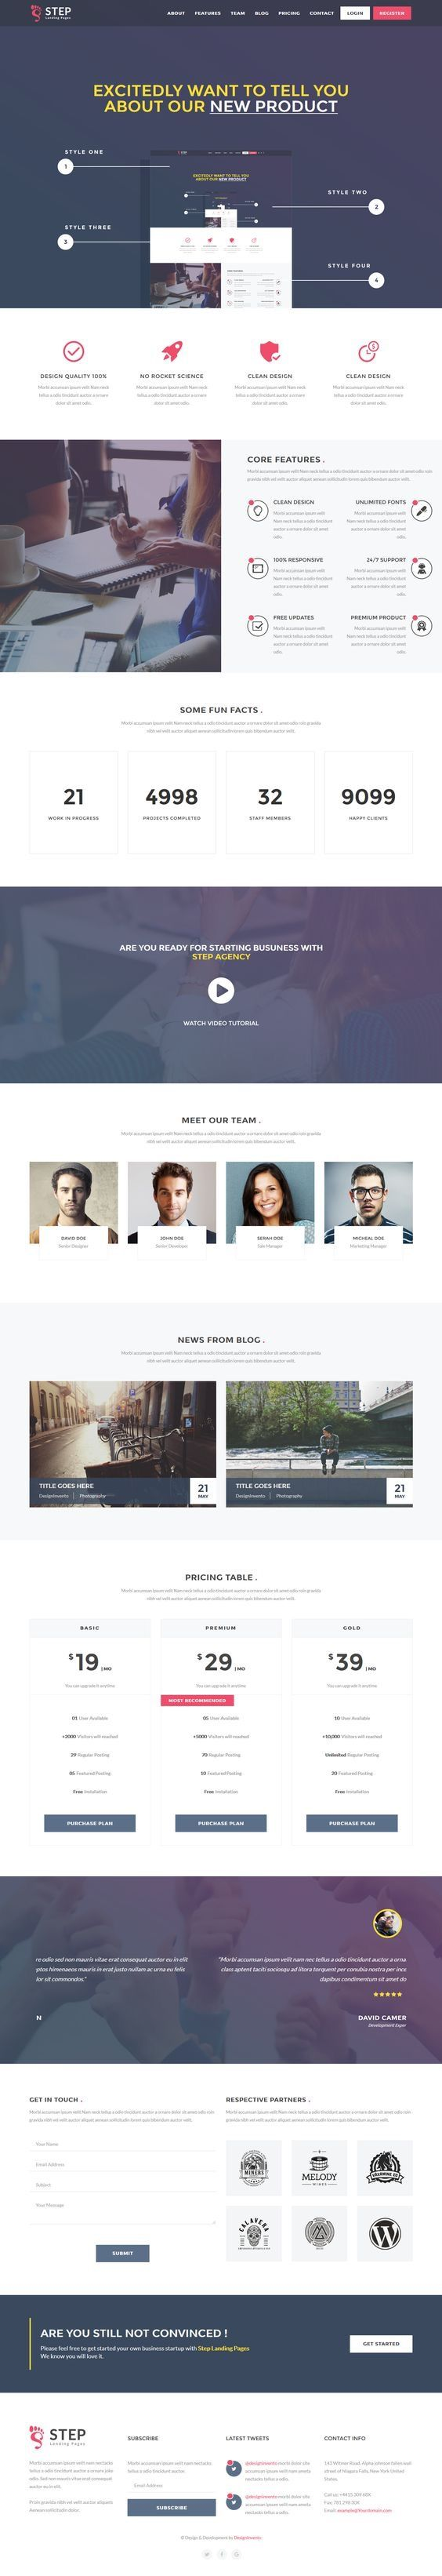 Step - Startup HTML Landing Page Template. Download: https://themeforest.net/item/step-startup-html-landing-page-template/16692048?ref=skarin